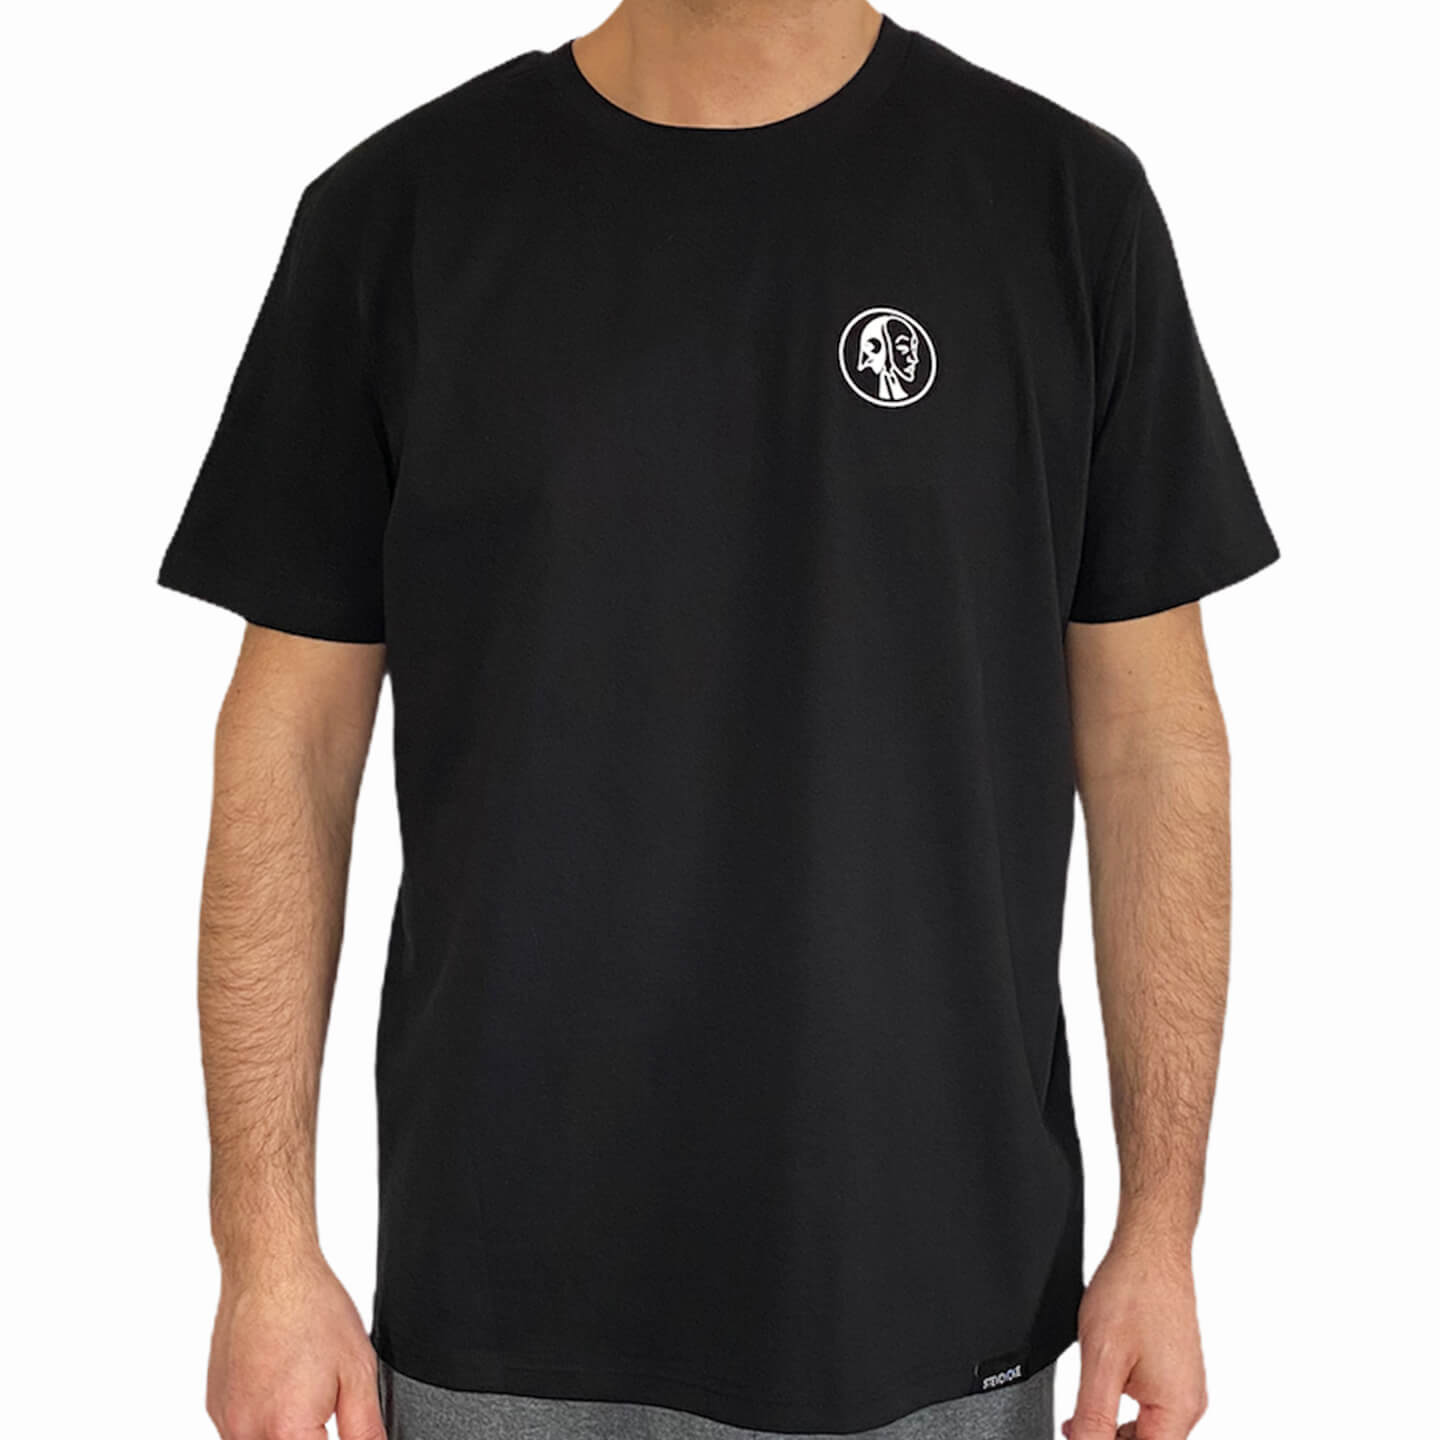 UNISEX-MINI-LOGO-T-SHIRT-BLACK